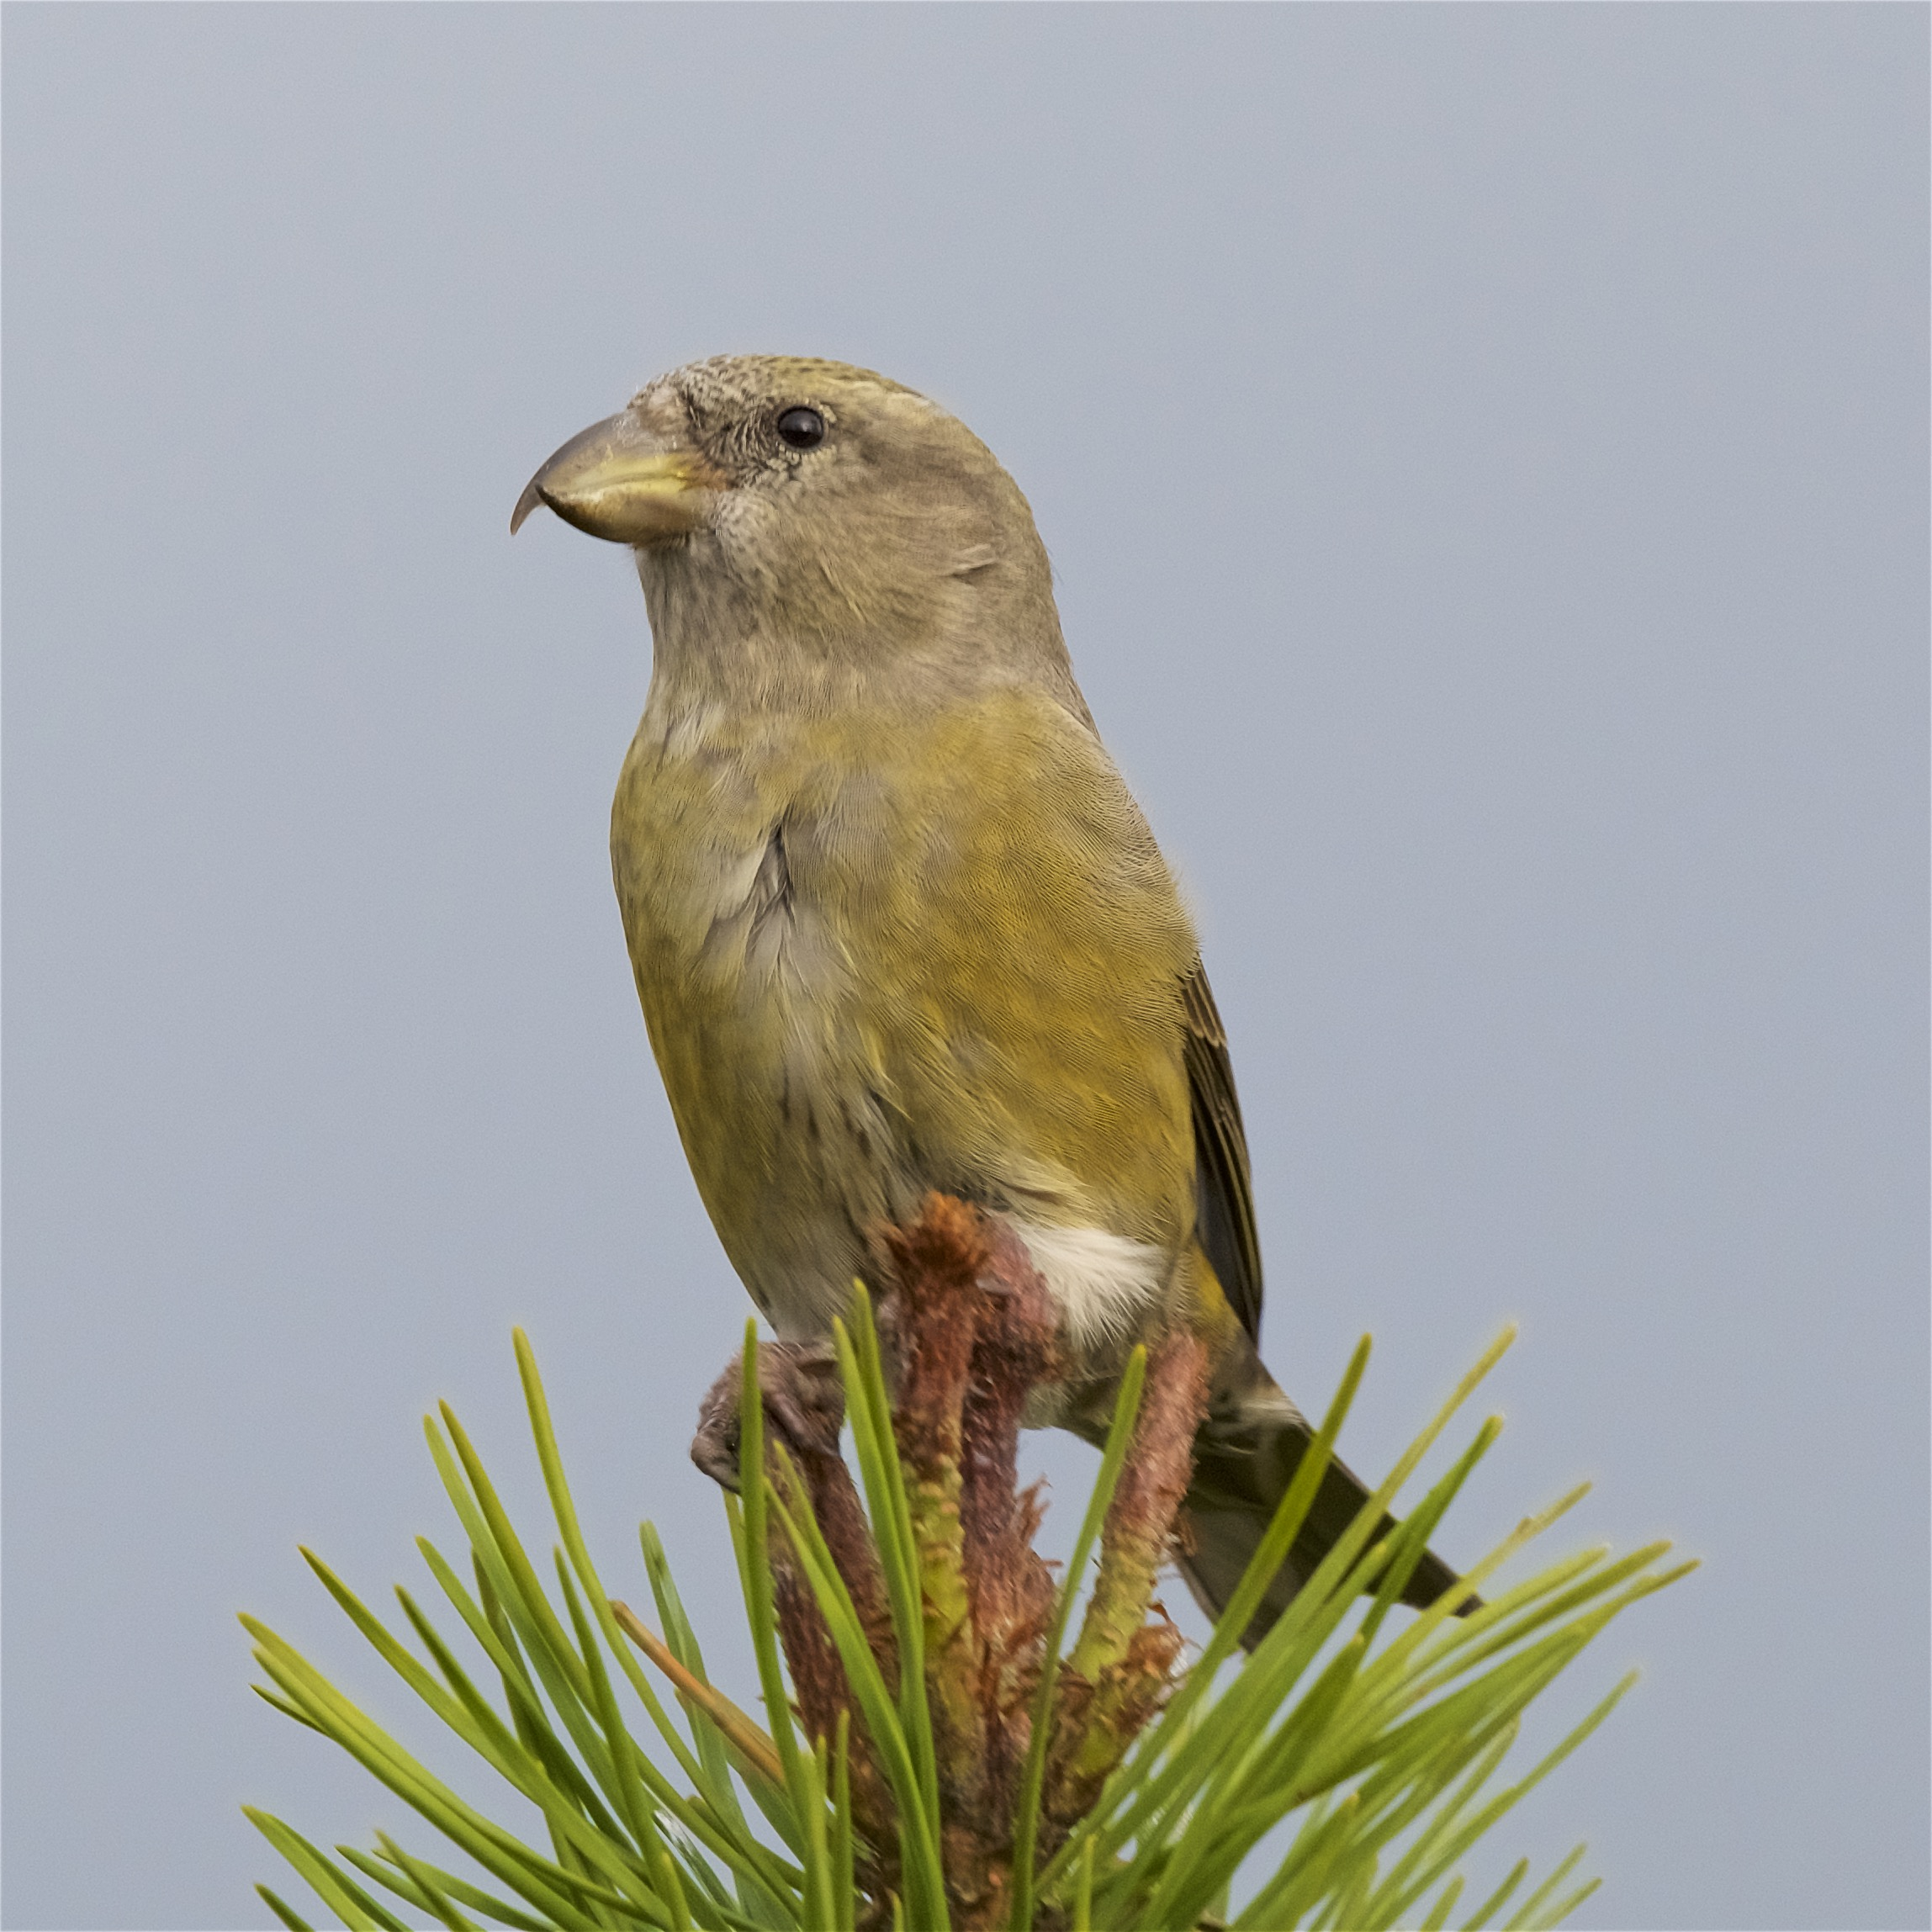 Common Crossbill 10 Nov 2017 (Peter Christian)